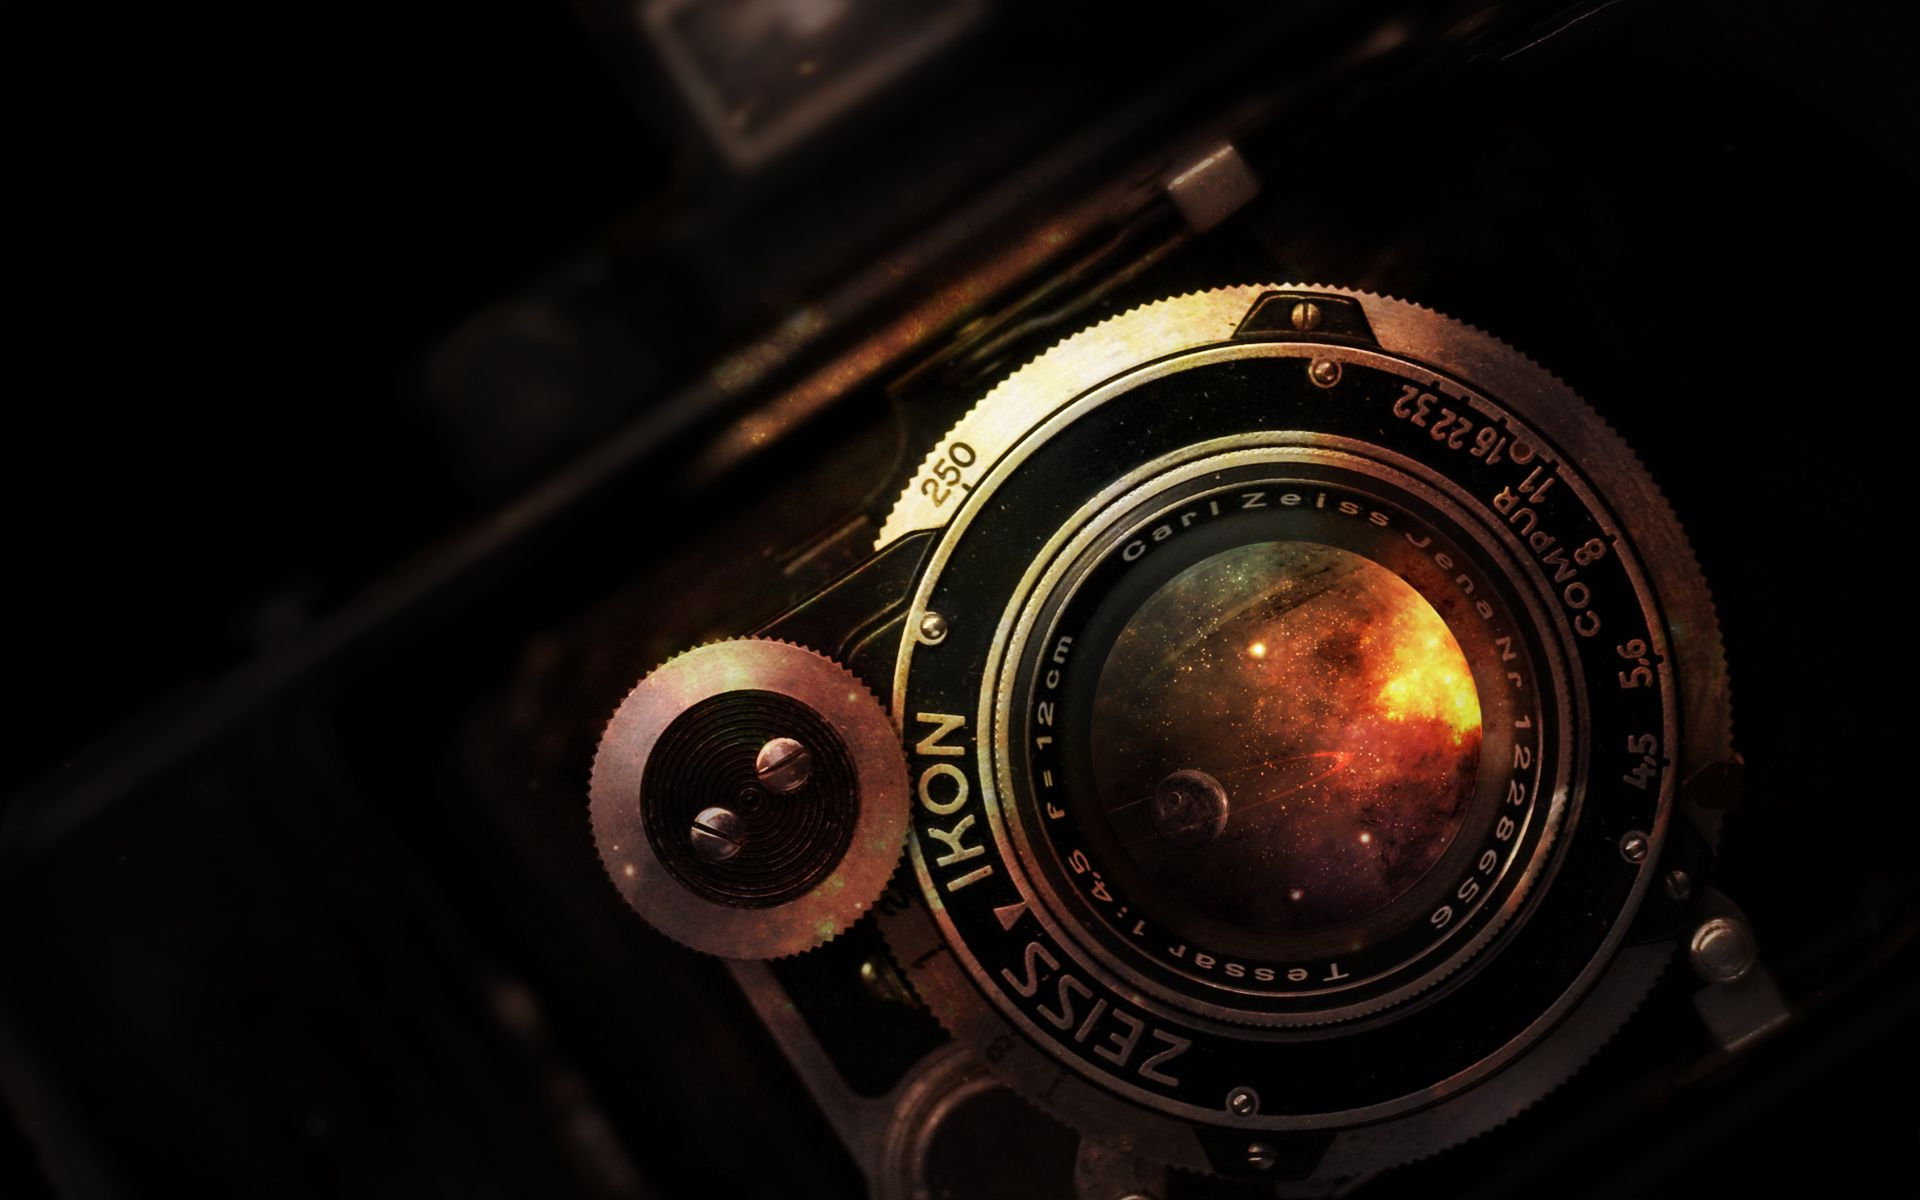 Hd wallpaper camera - Carl Zeiss Always The Best Choice For Your Camera Lens